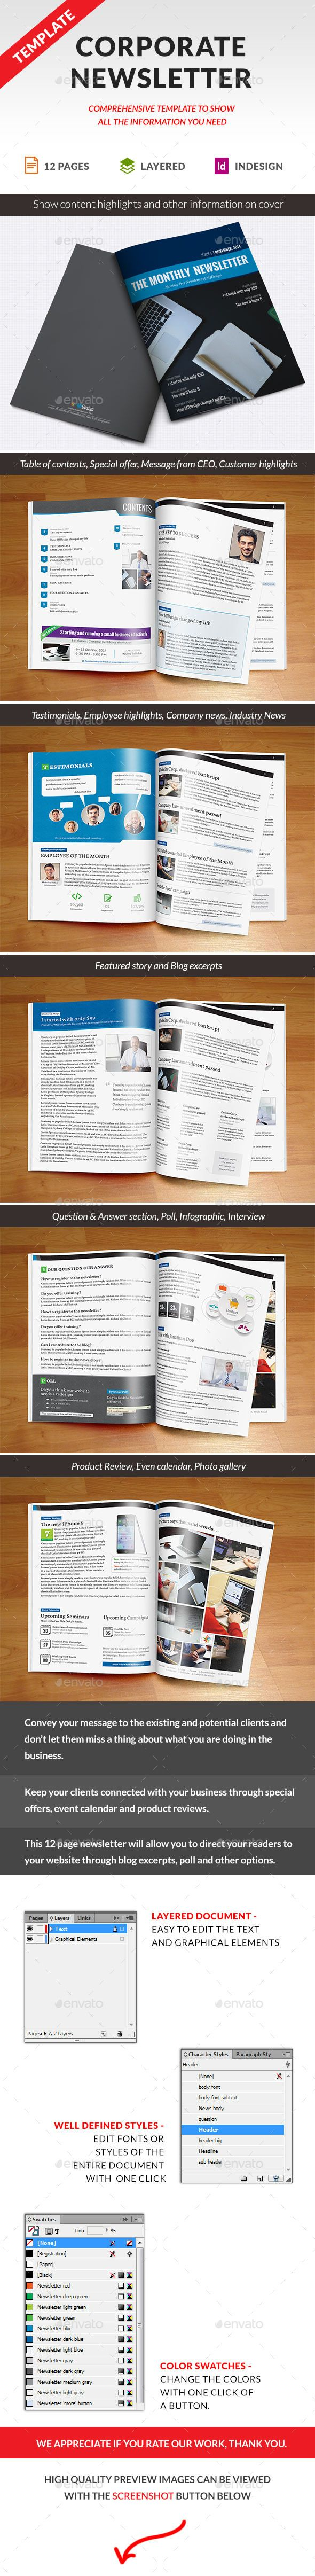 Corporate Newsletter Indesign Template   Pinterest